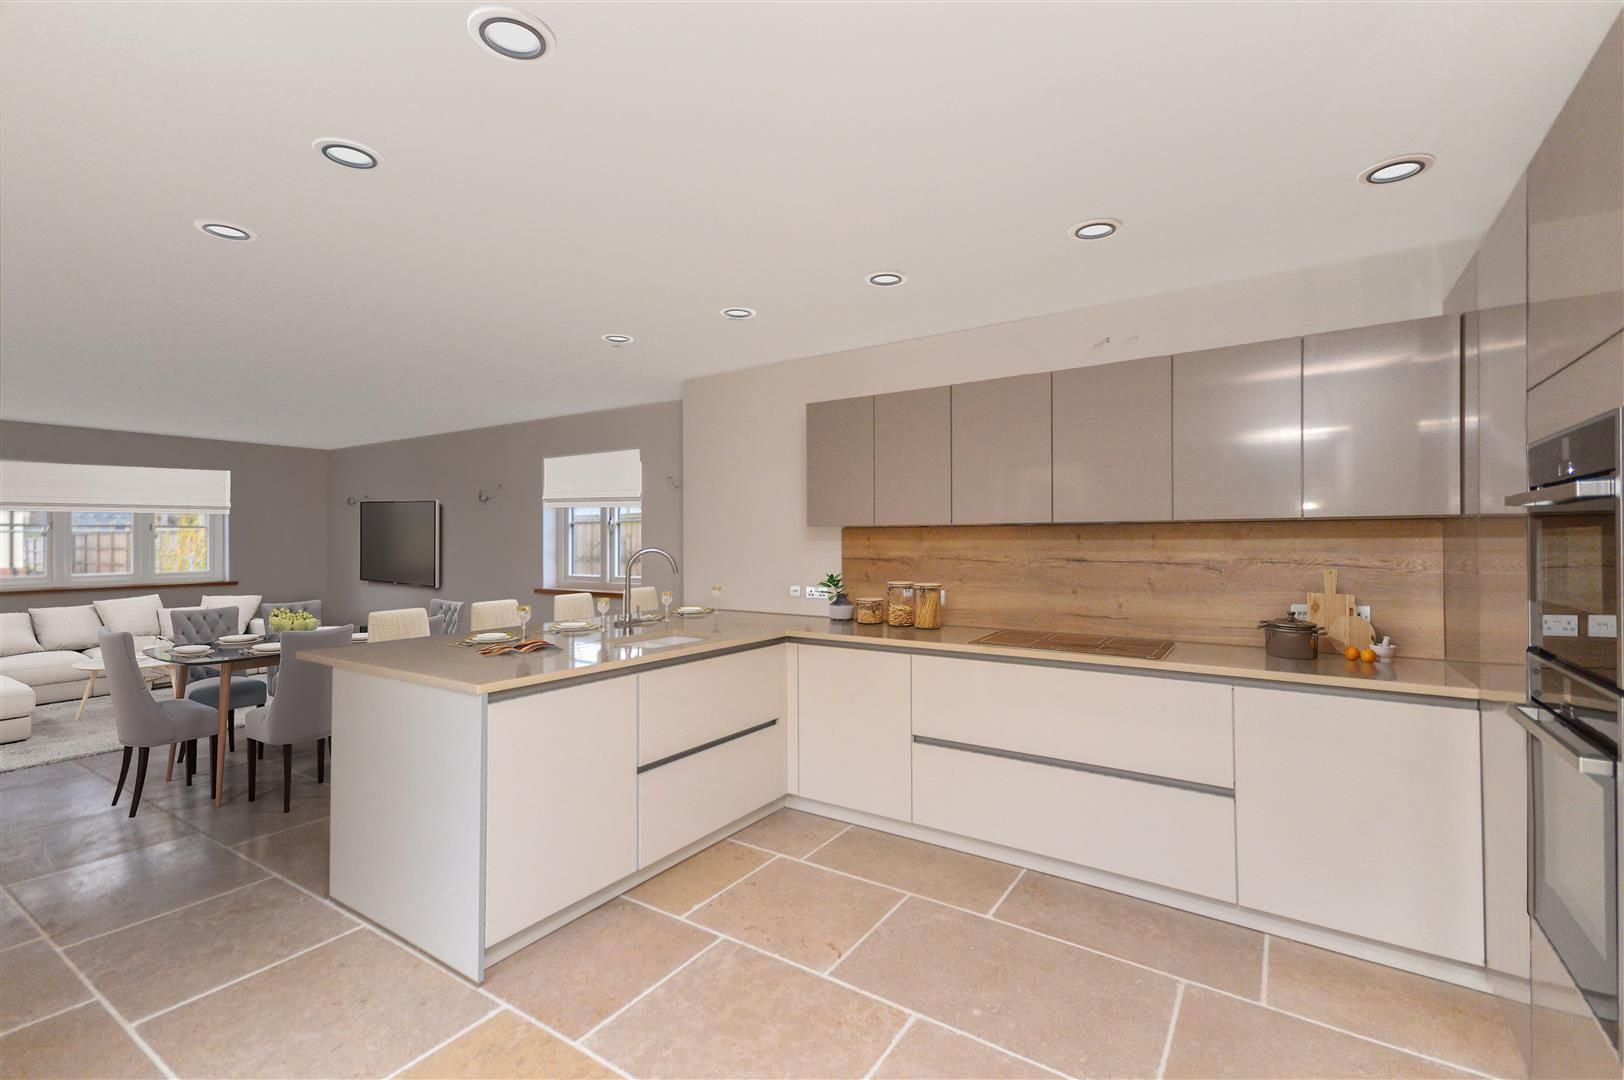 3 bed detached for sale in Marden  - Property Image 4